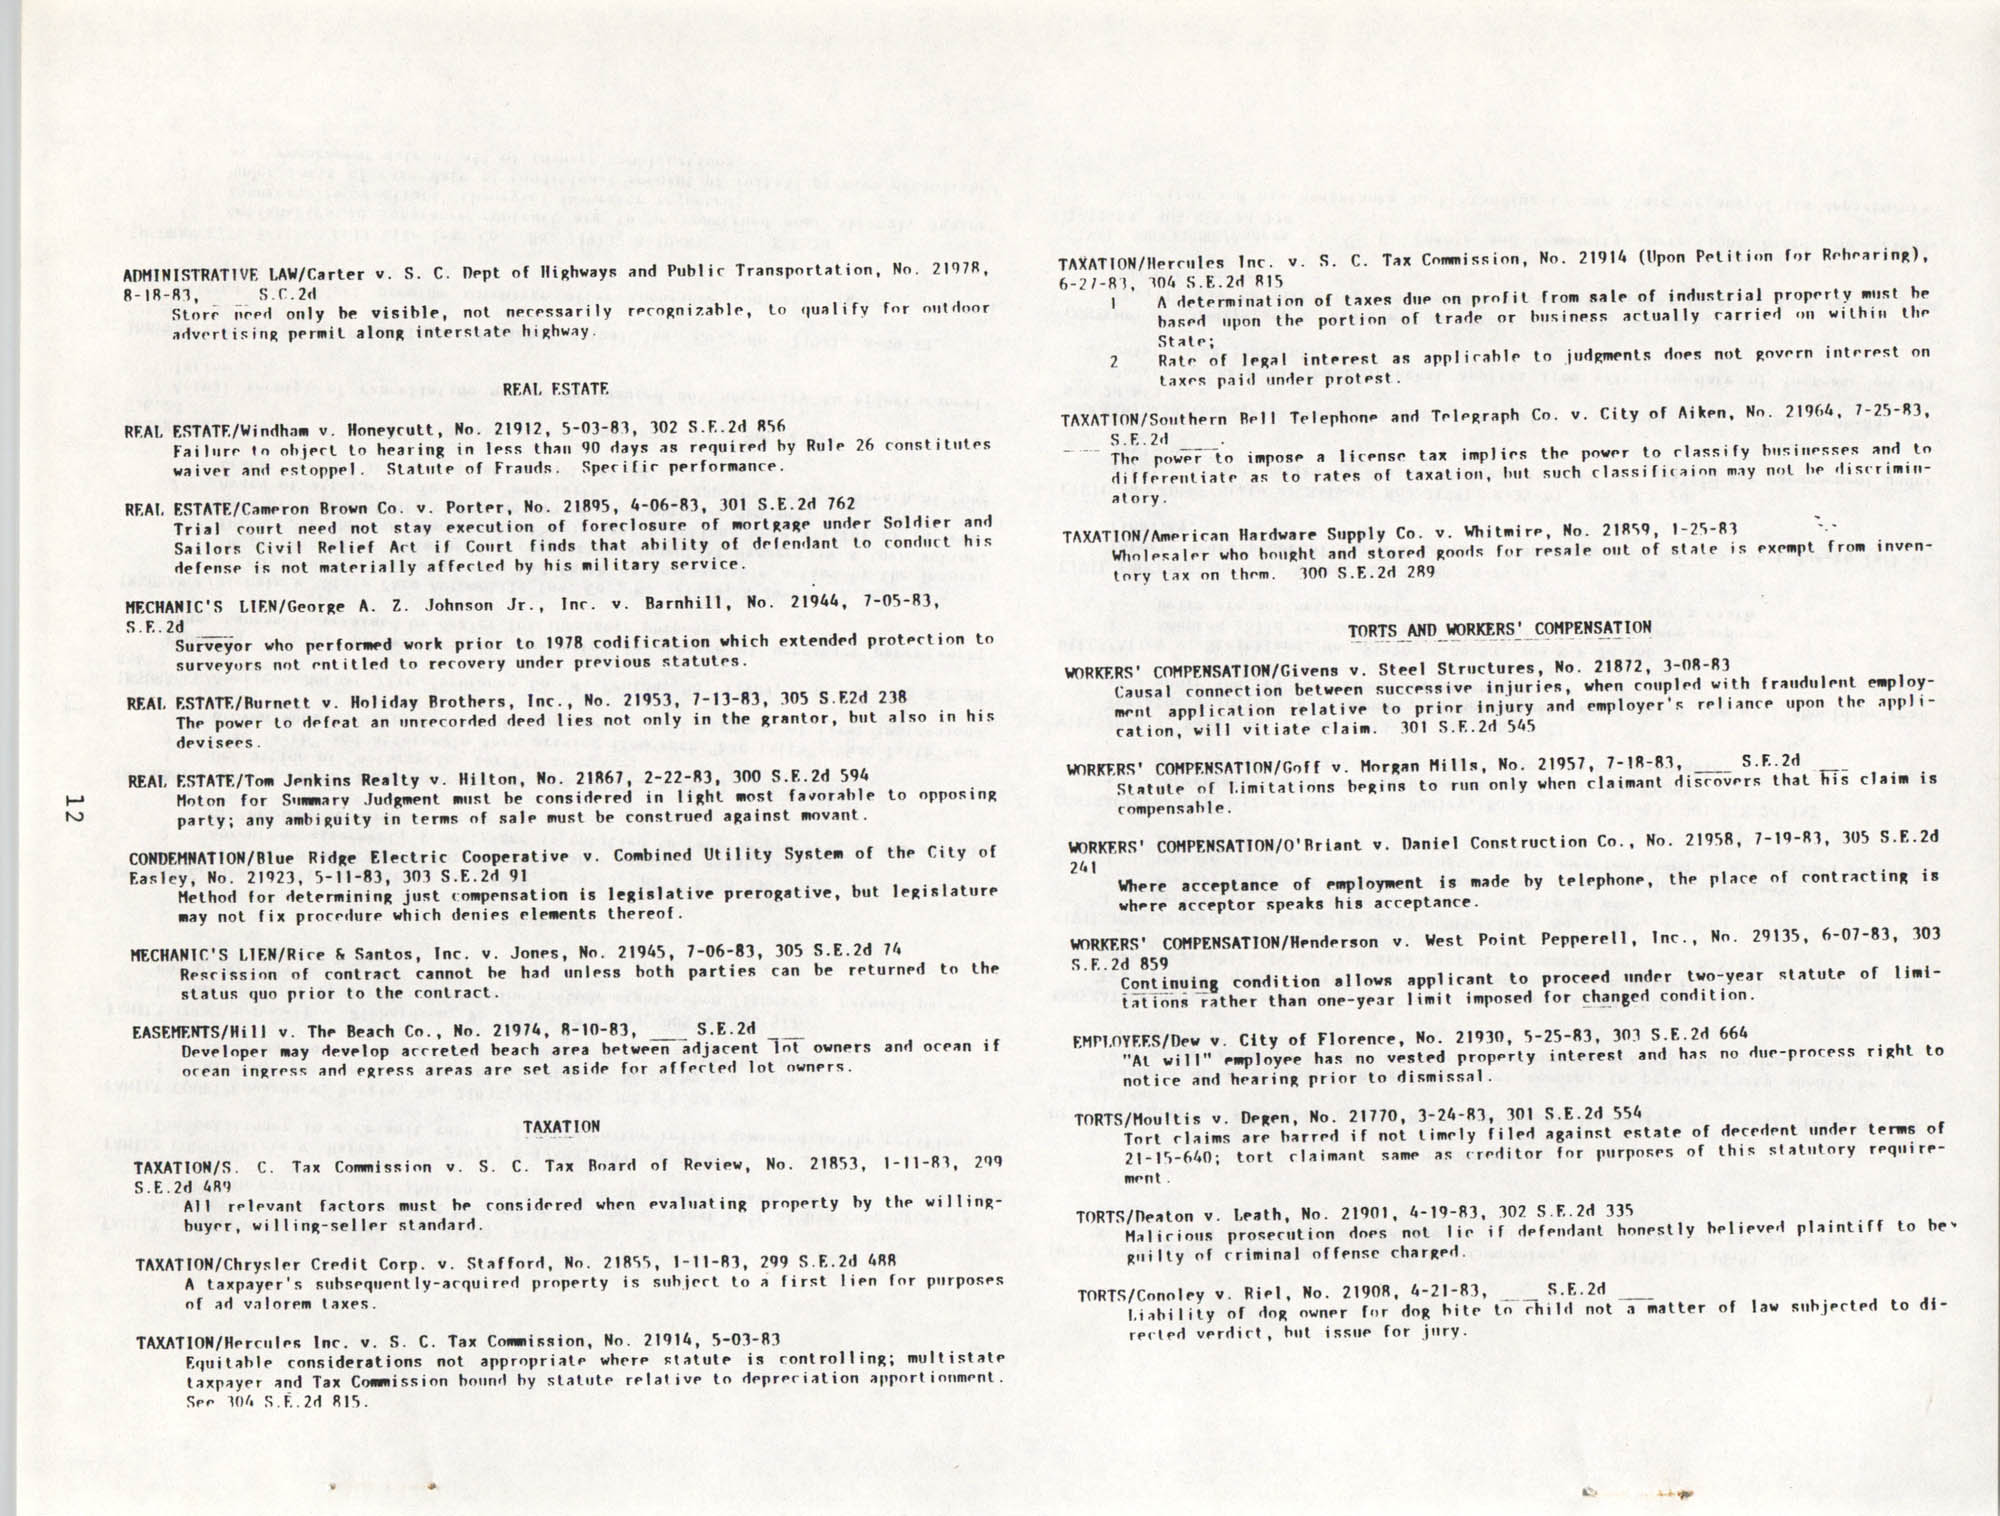 The General Practice Section Update, Vol. 1 No. 1, South Carolina Bar, November 1983, Page 12